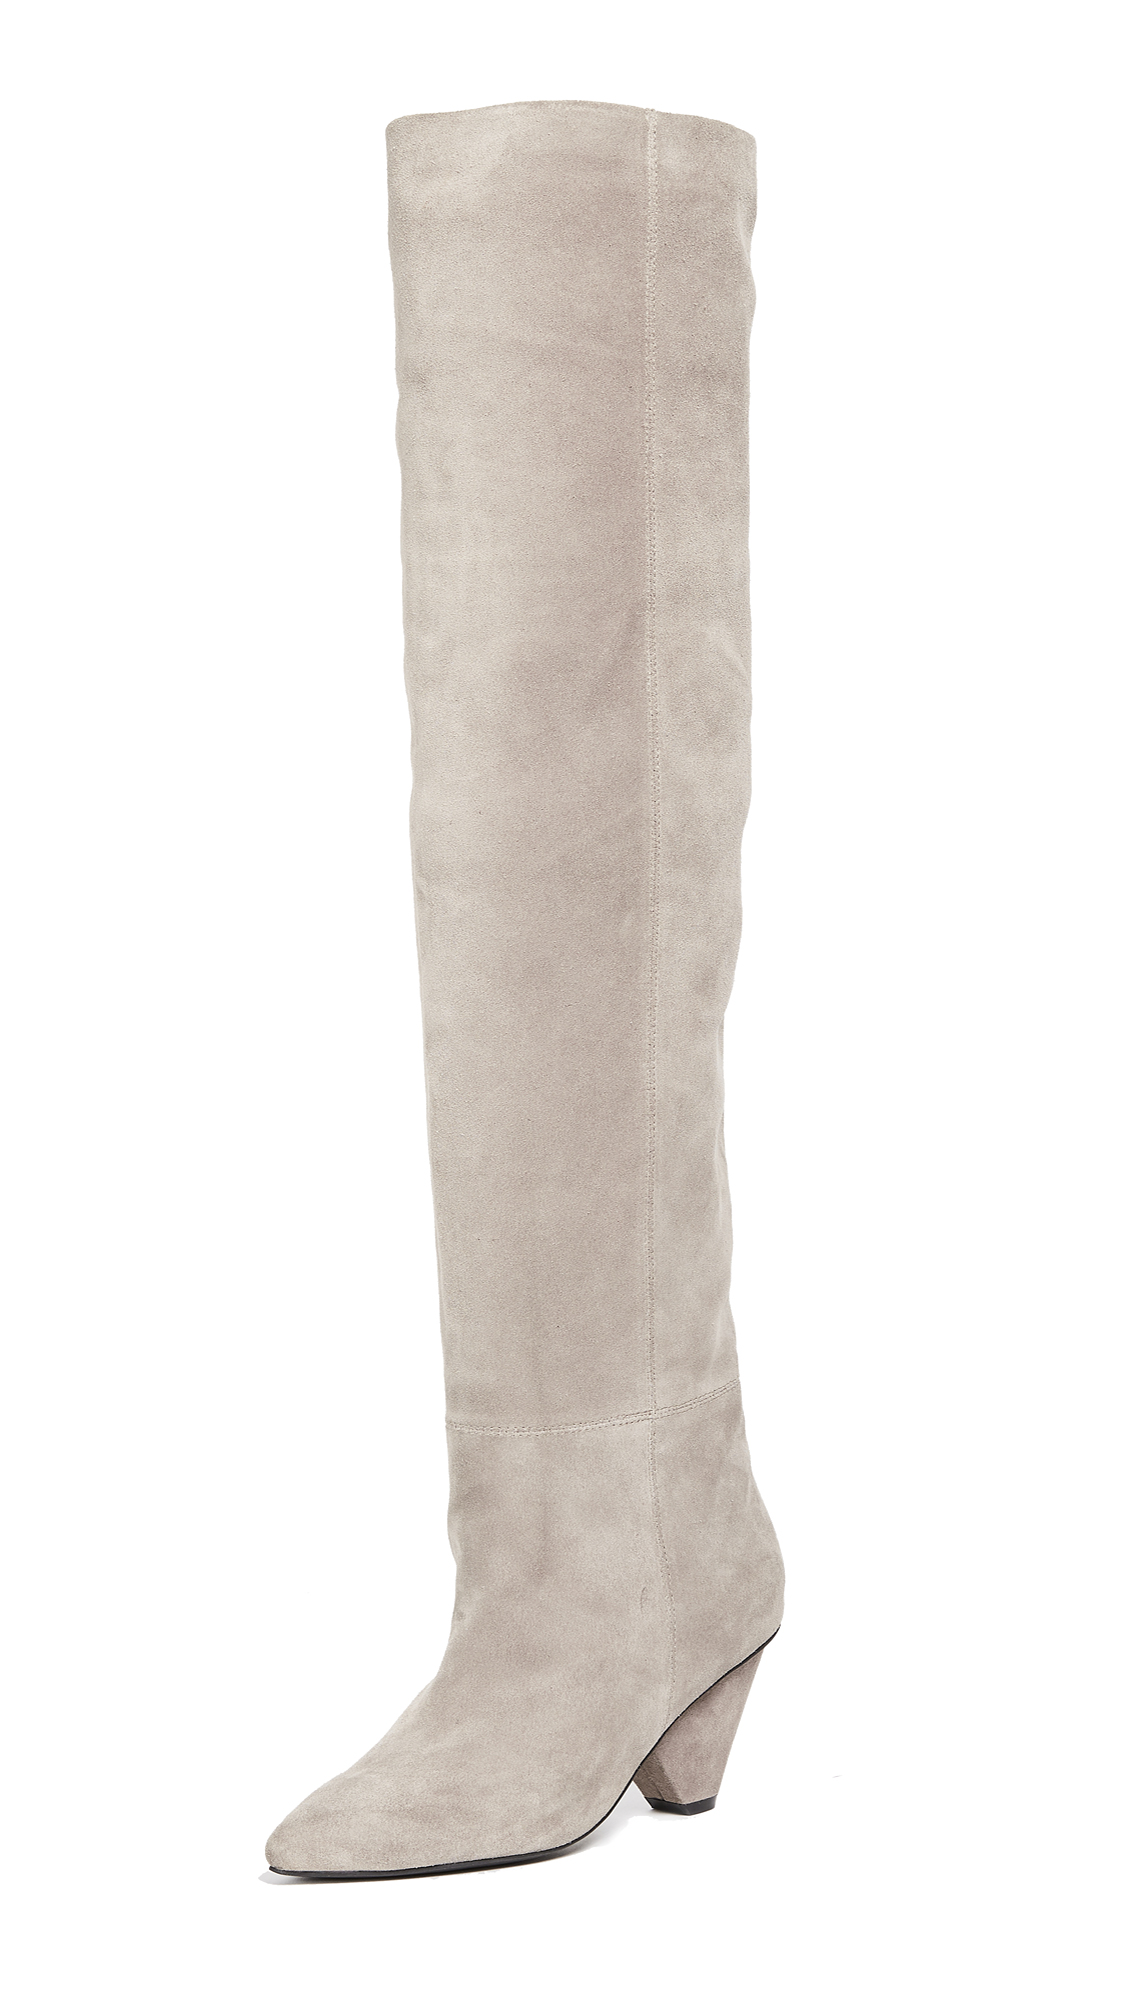 Jeffrey Campbell Senita Cone Heel Boots - Taupe